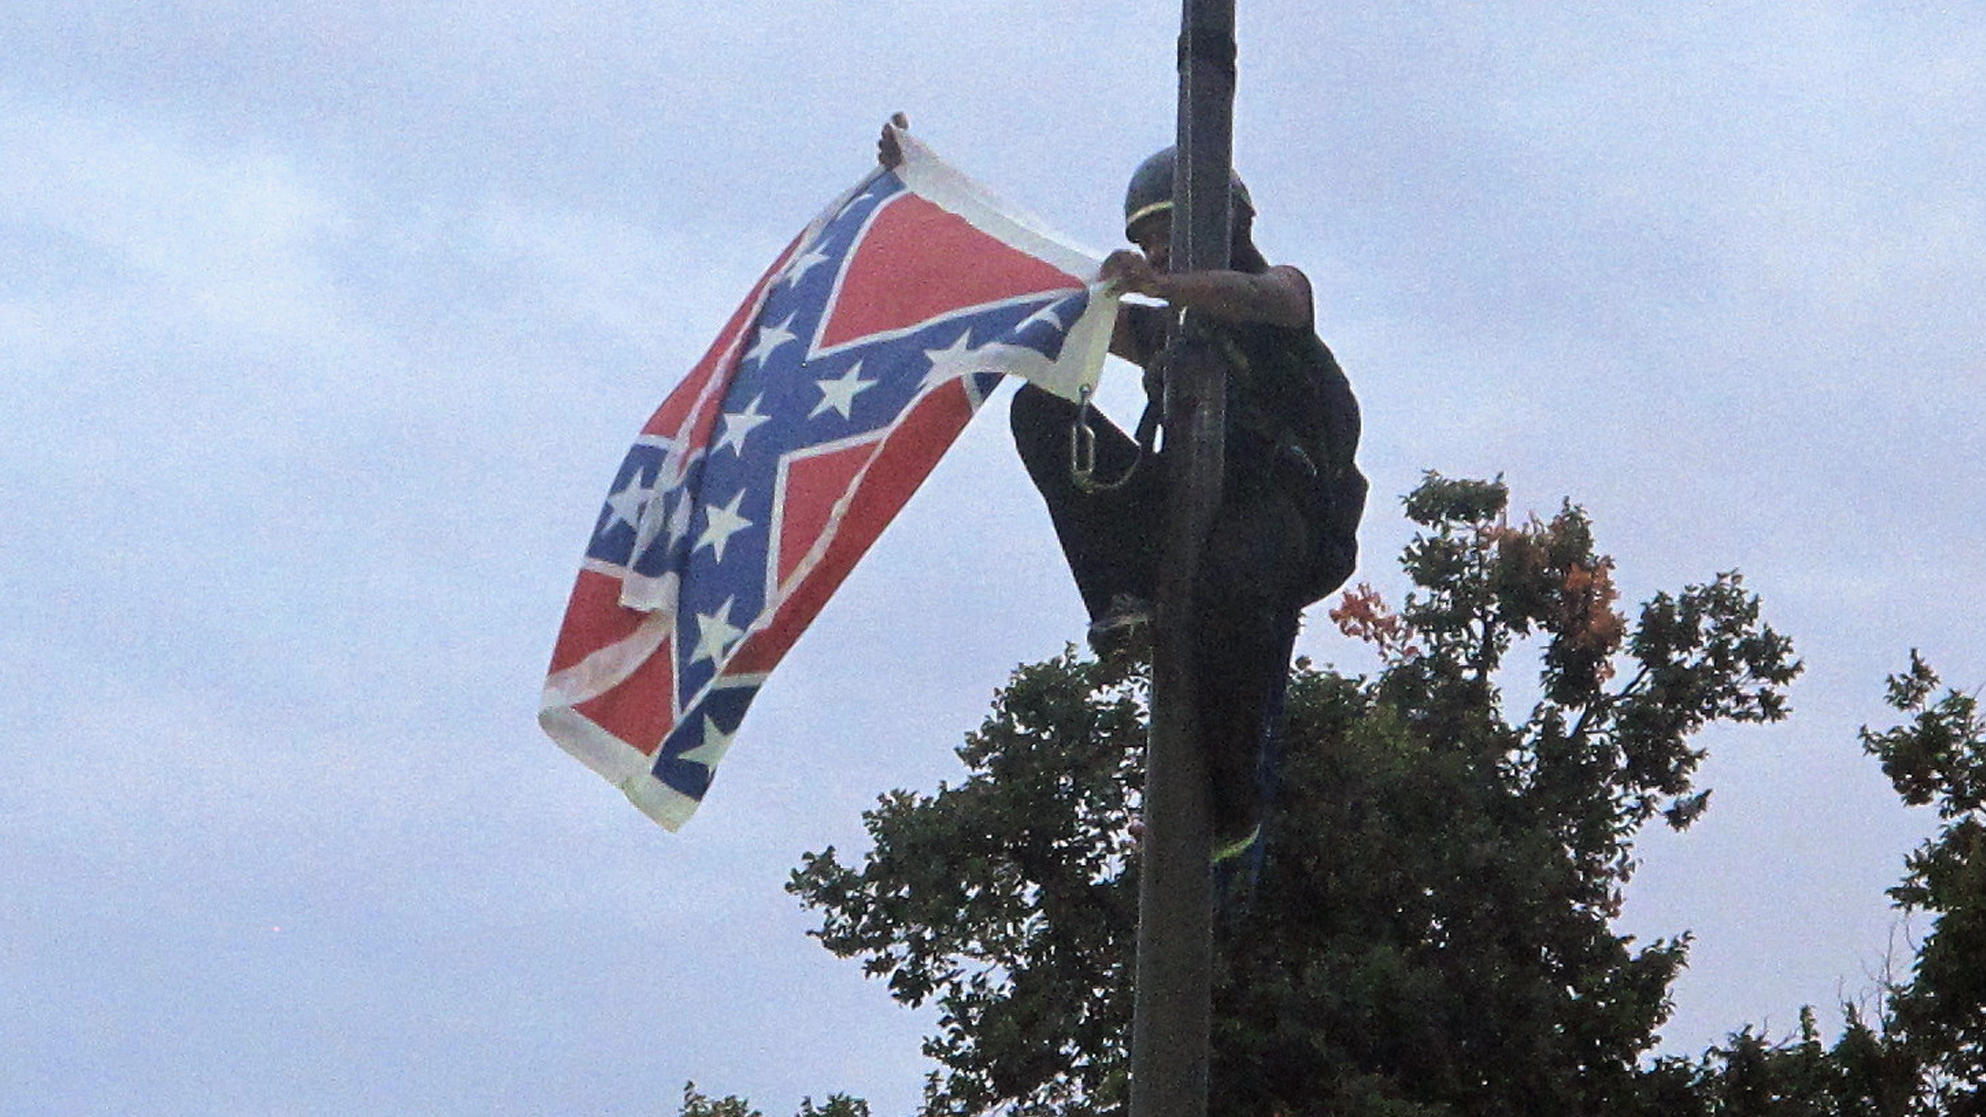 Group to fly Confederate flag at SC capitol on Monday